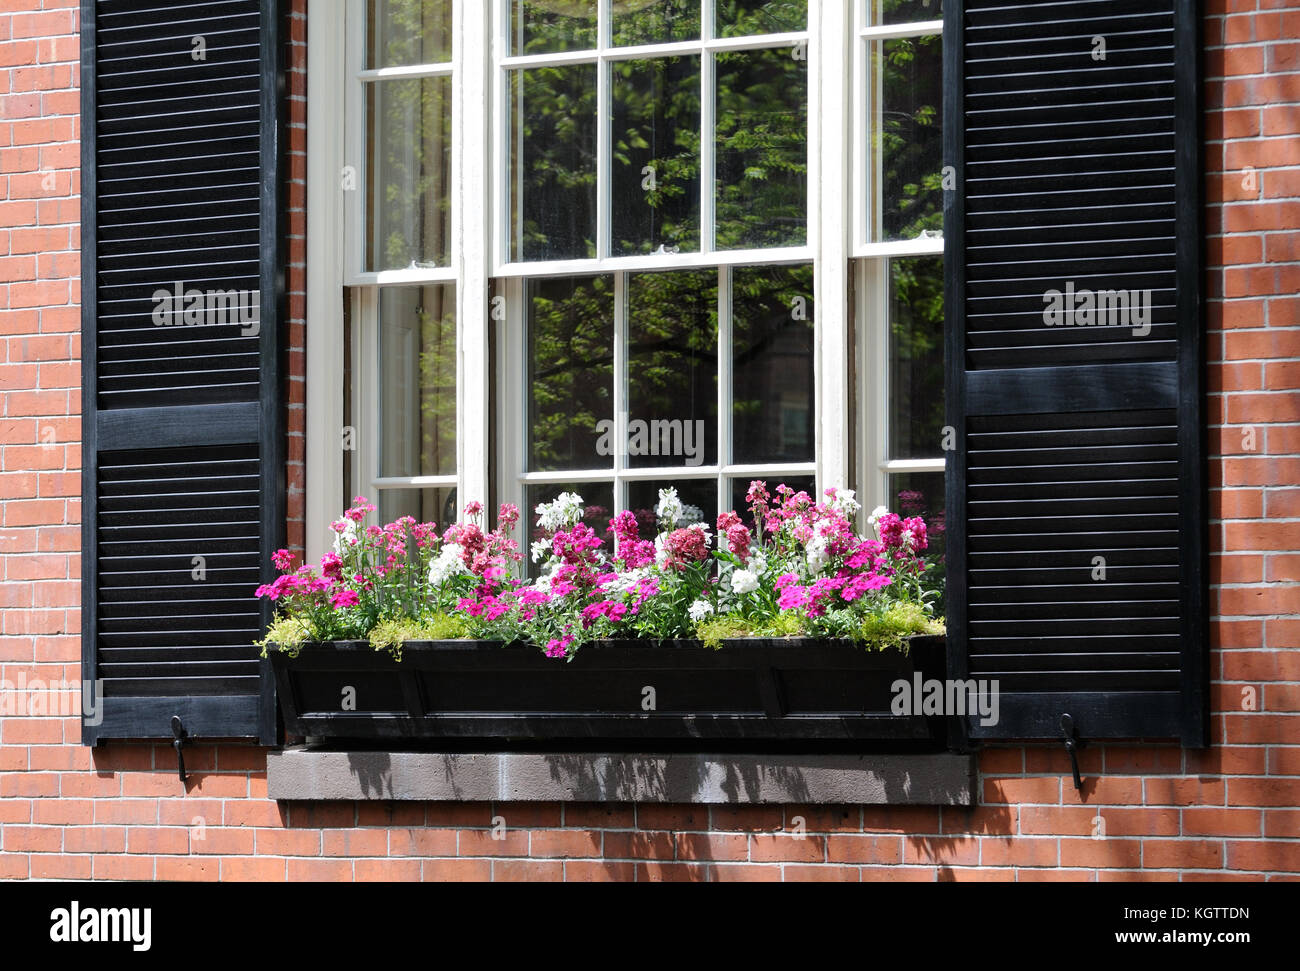 Elegant window box detail. Black box and shutters, white double-hung window frame, red brick wall, pink and white - Stock Image